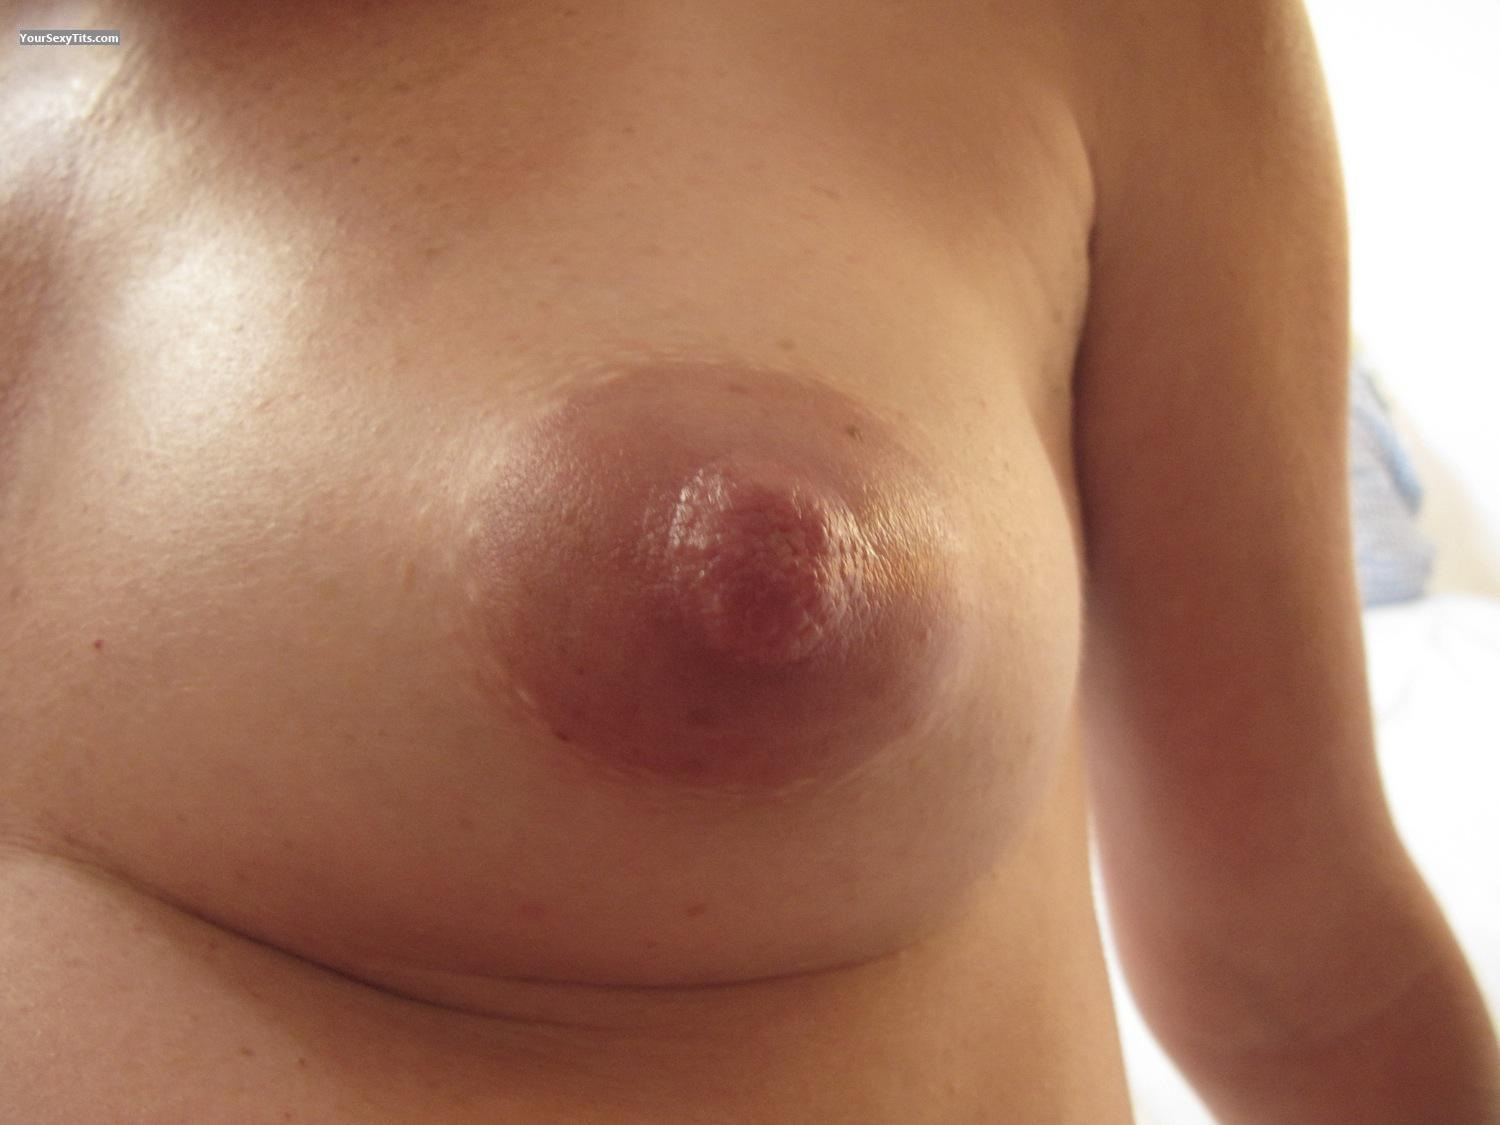 Tit Flash: Wife's Tanlined Medium Tits - Geraldine from Spain